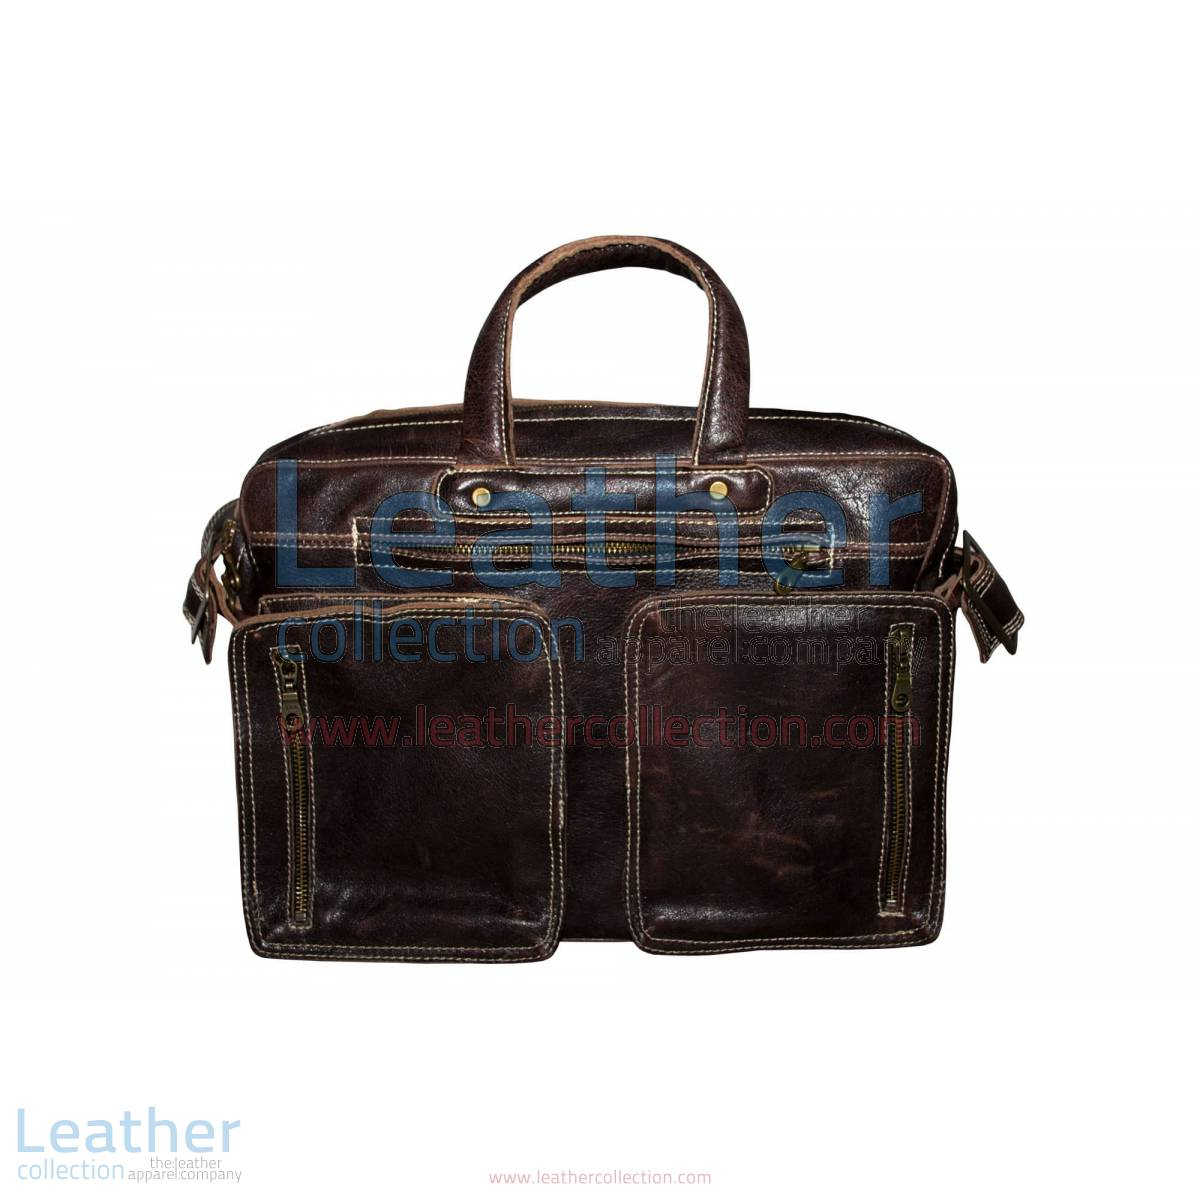 Retro Leather Laptop Bag | retro laptop bag